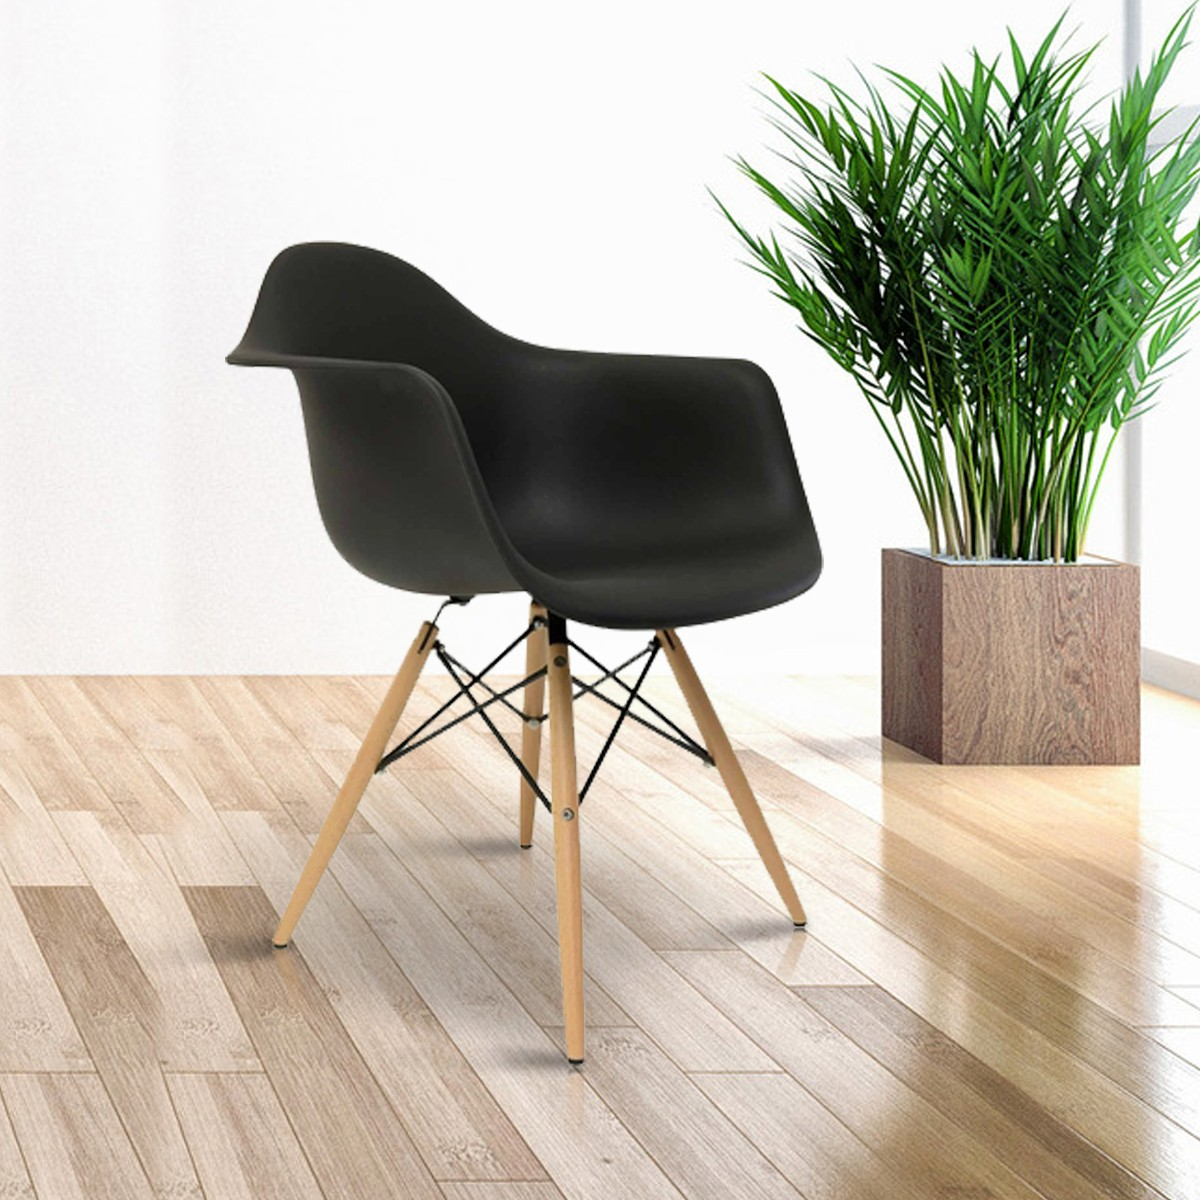 Molded Plastic Arm Chair in Black (T813E008-BK)